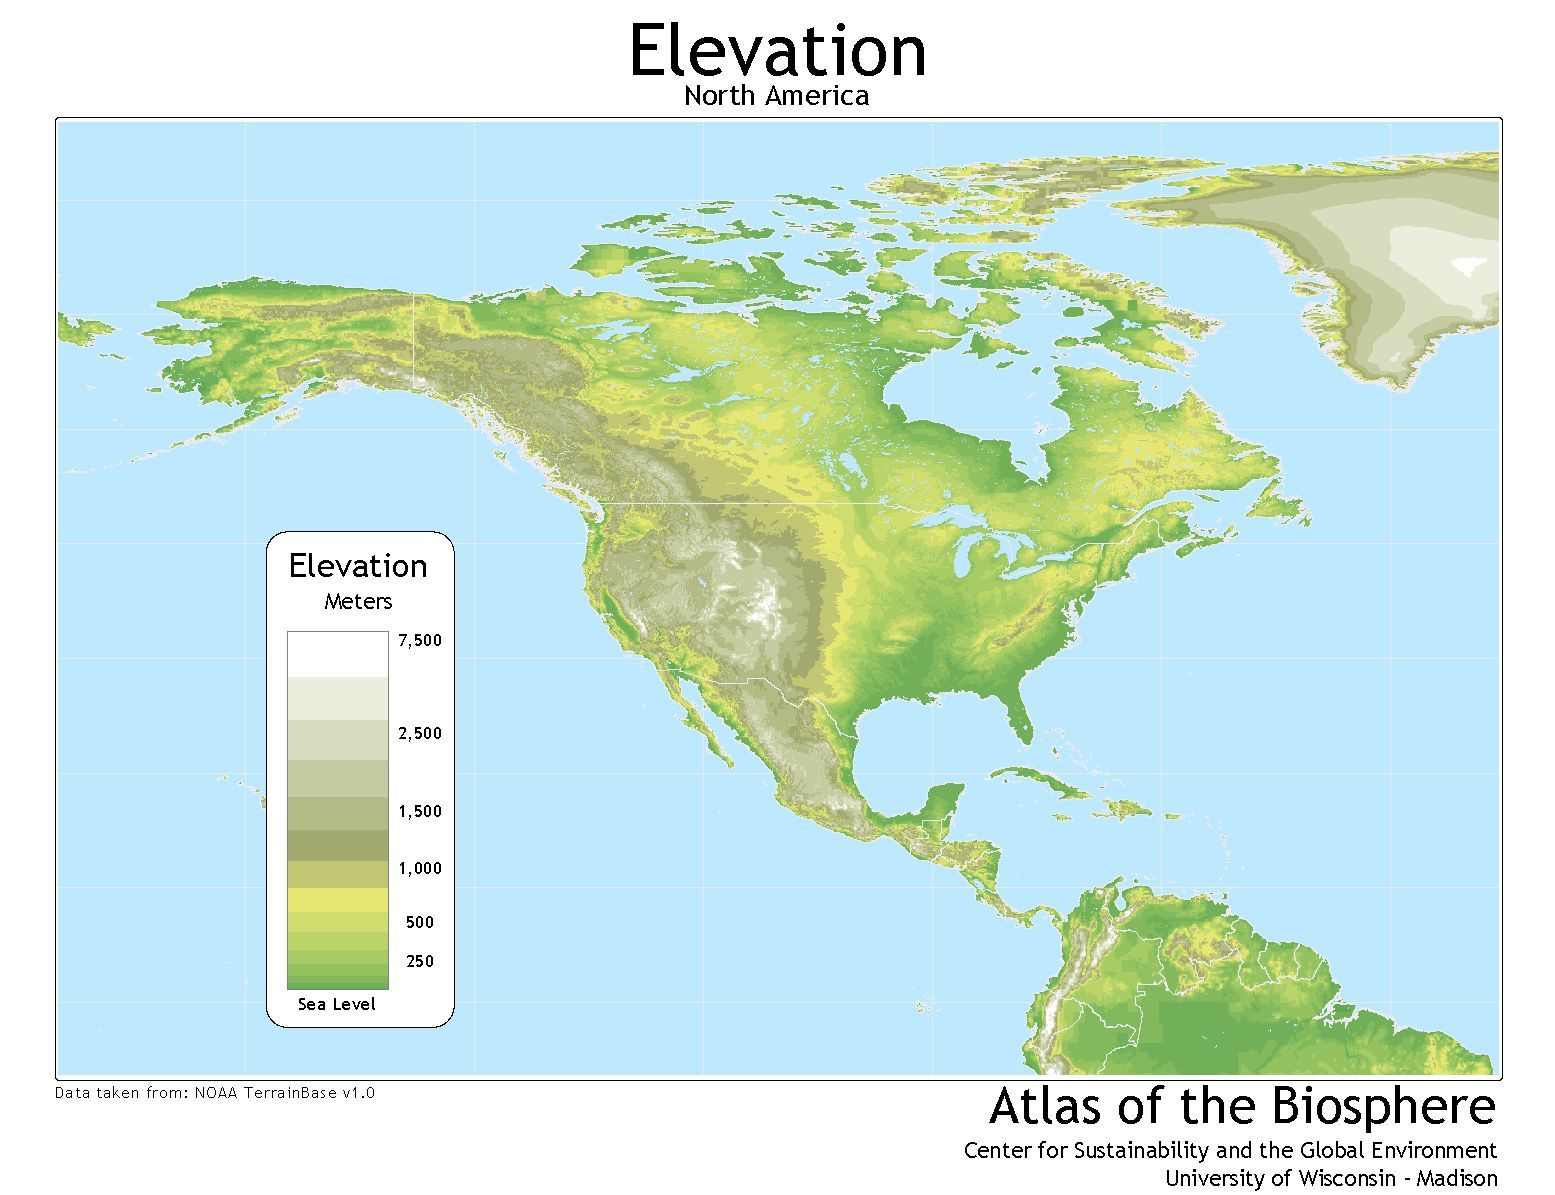 topographical map of north america Google Search North